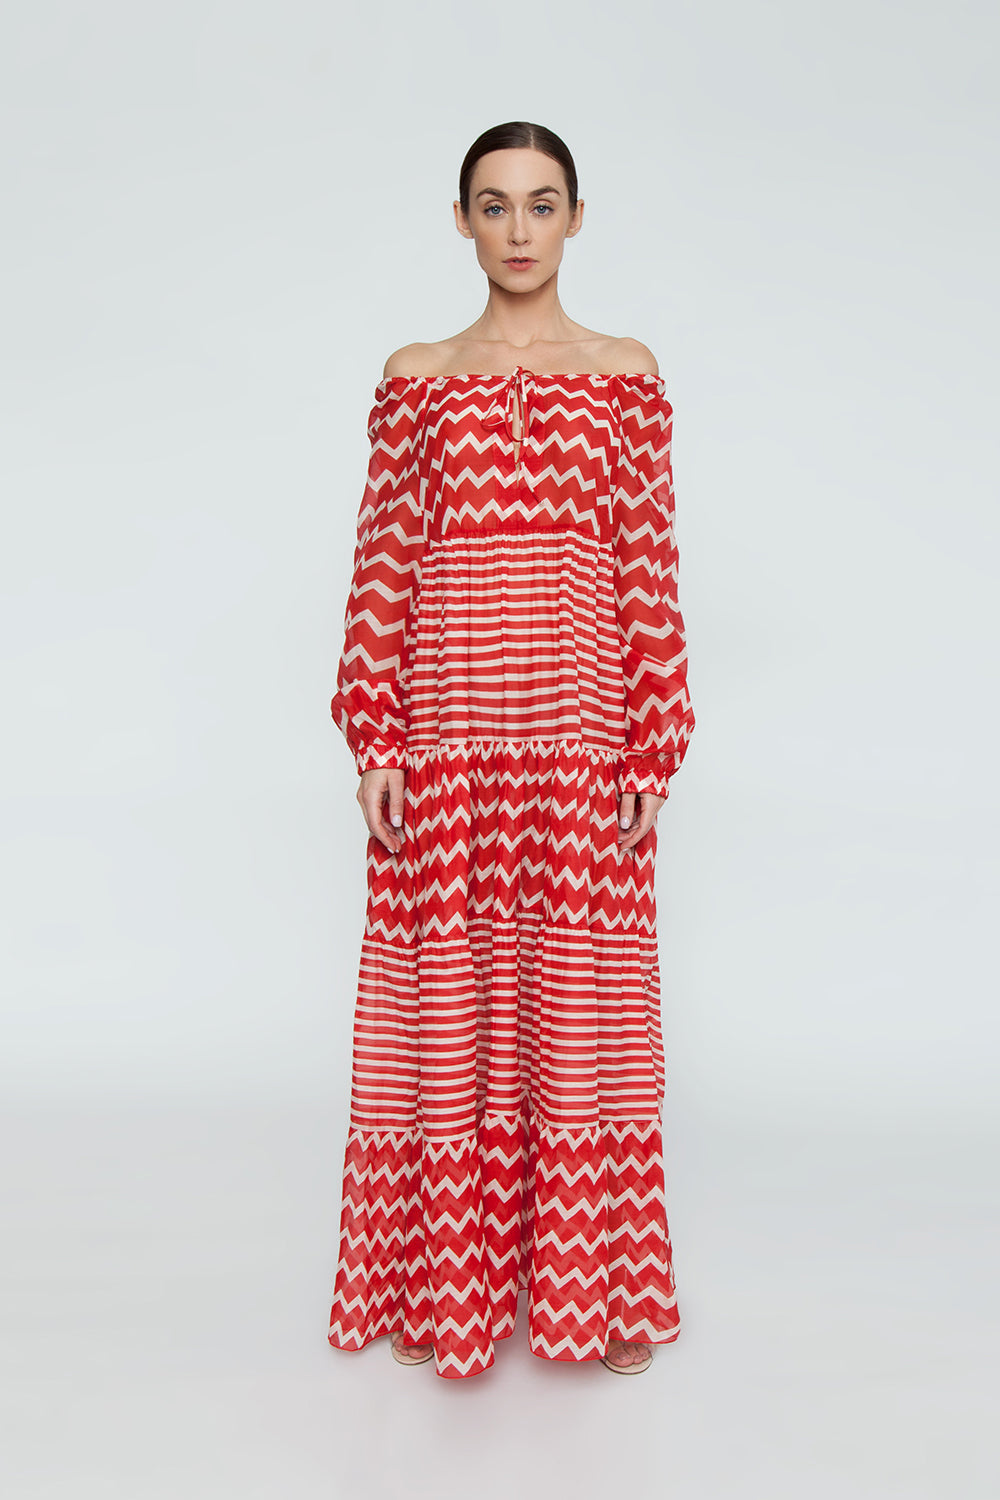 dd68289f10 ... STELLA MCCARTNEY Zig-Zag Cover-Up Maxi Dress - Red/Cream Chevron/